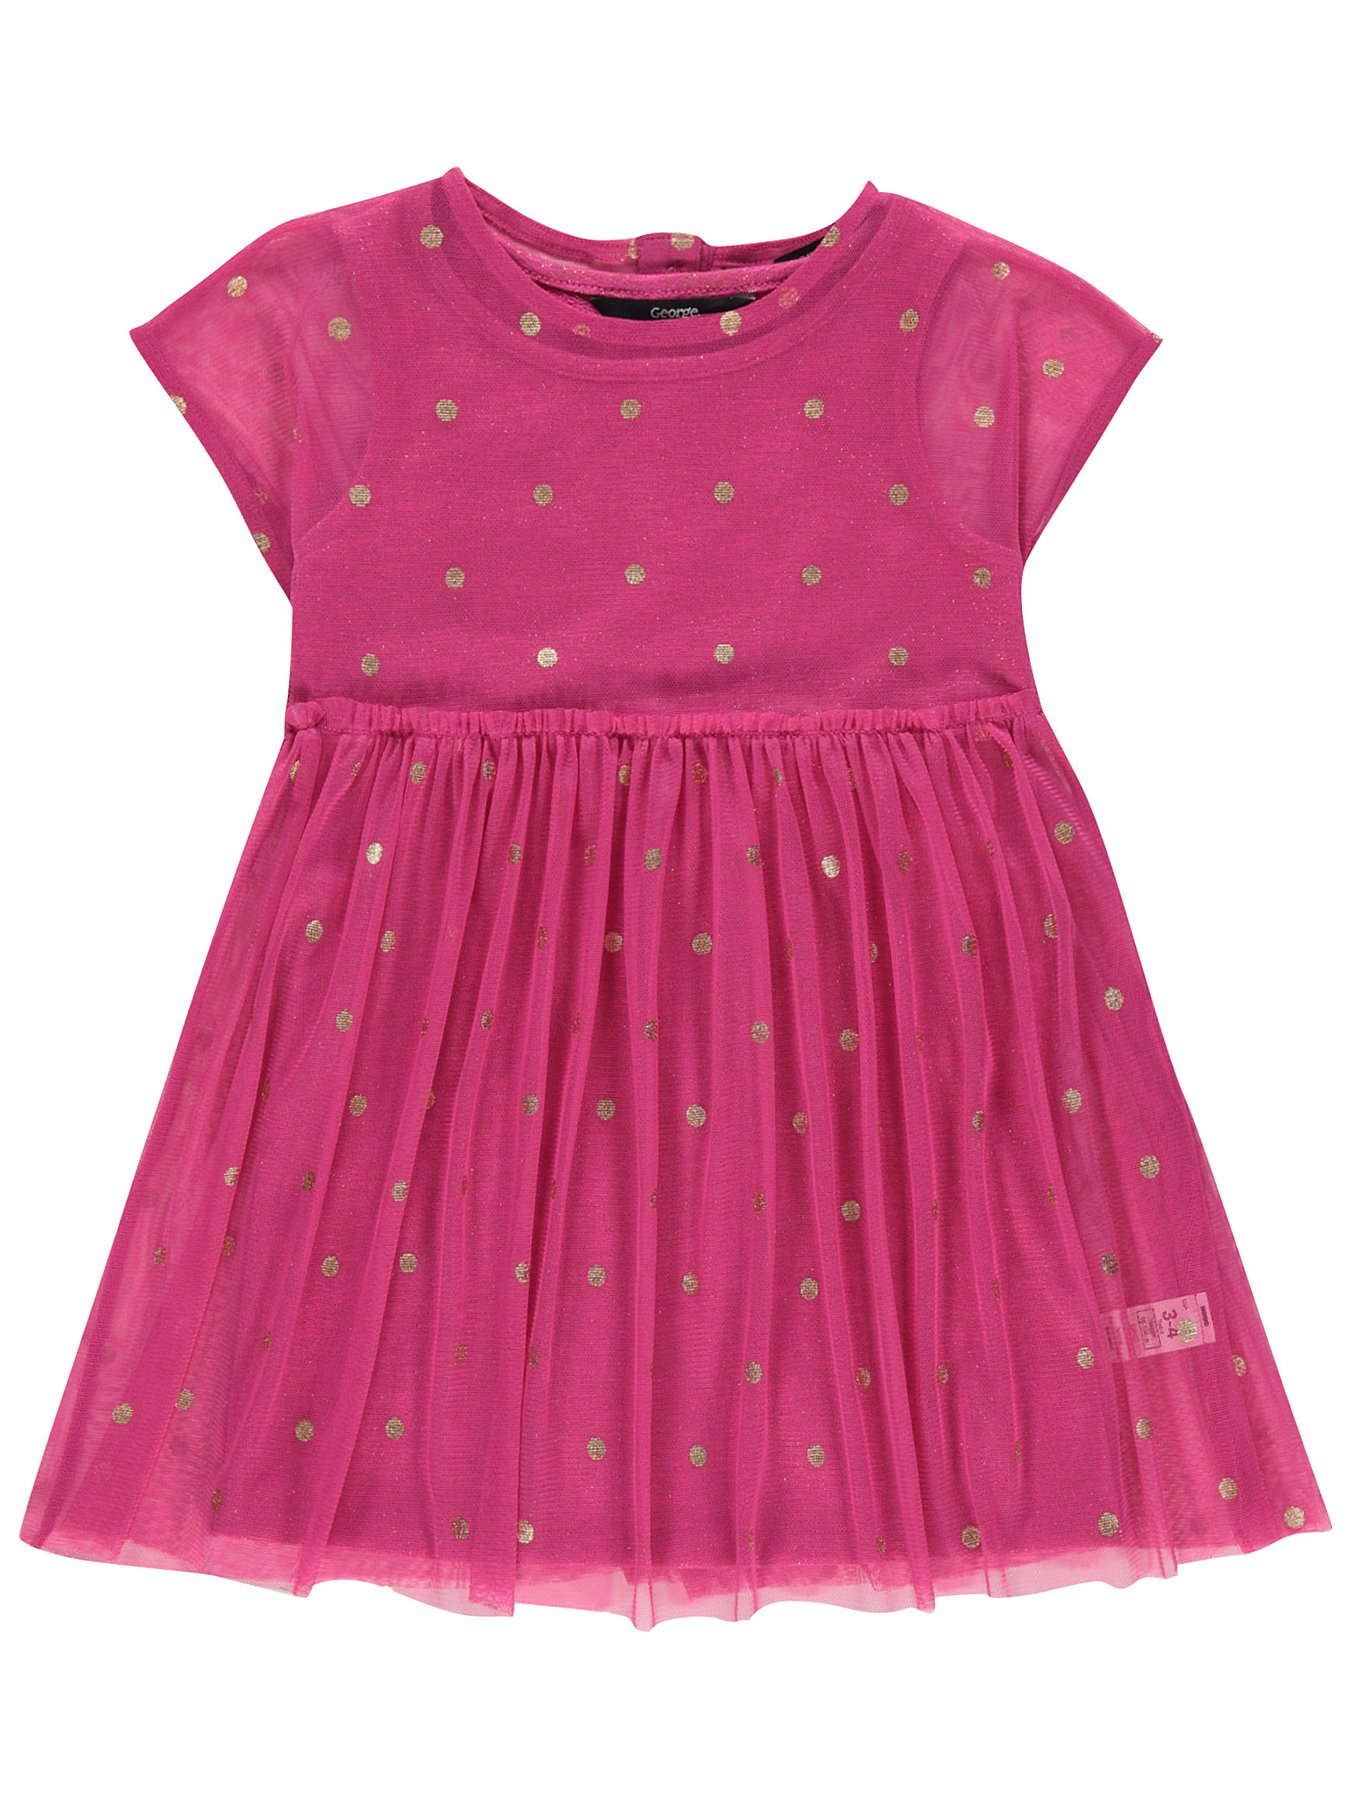 073dee72d Pink Polka Dot Print Tulle Dress | Kids | George